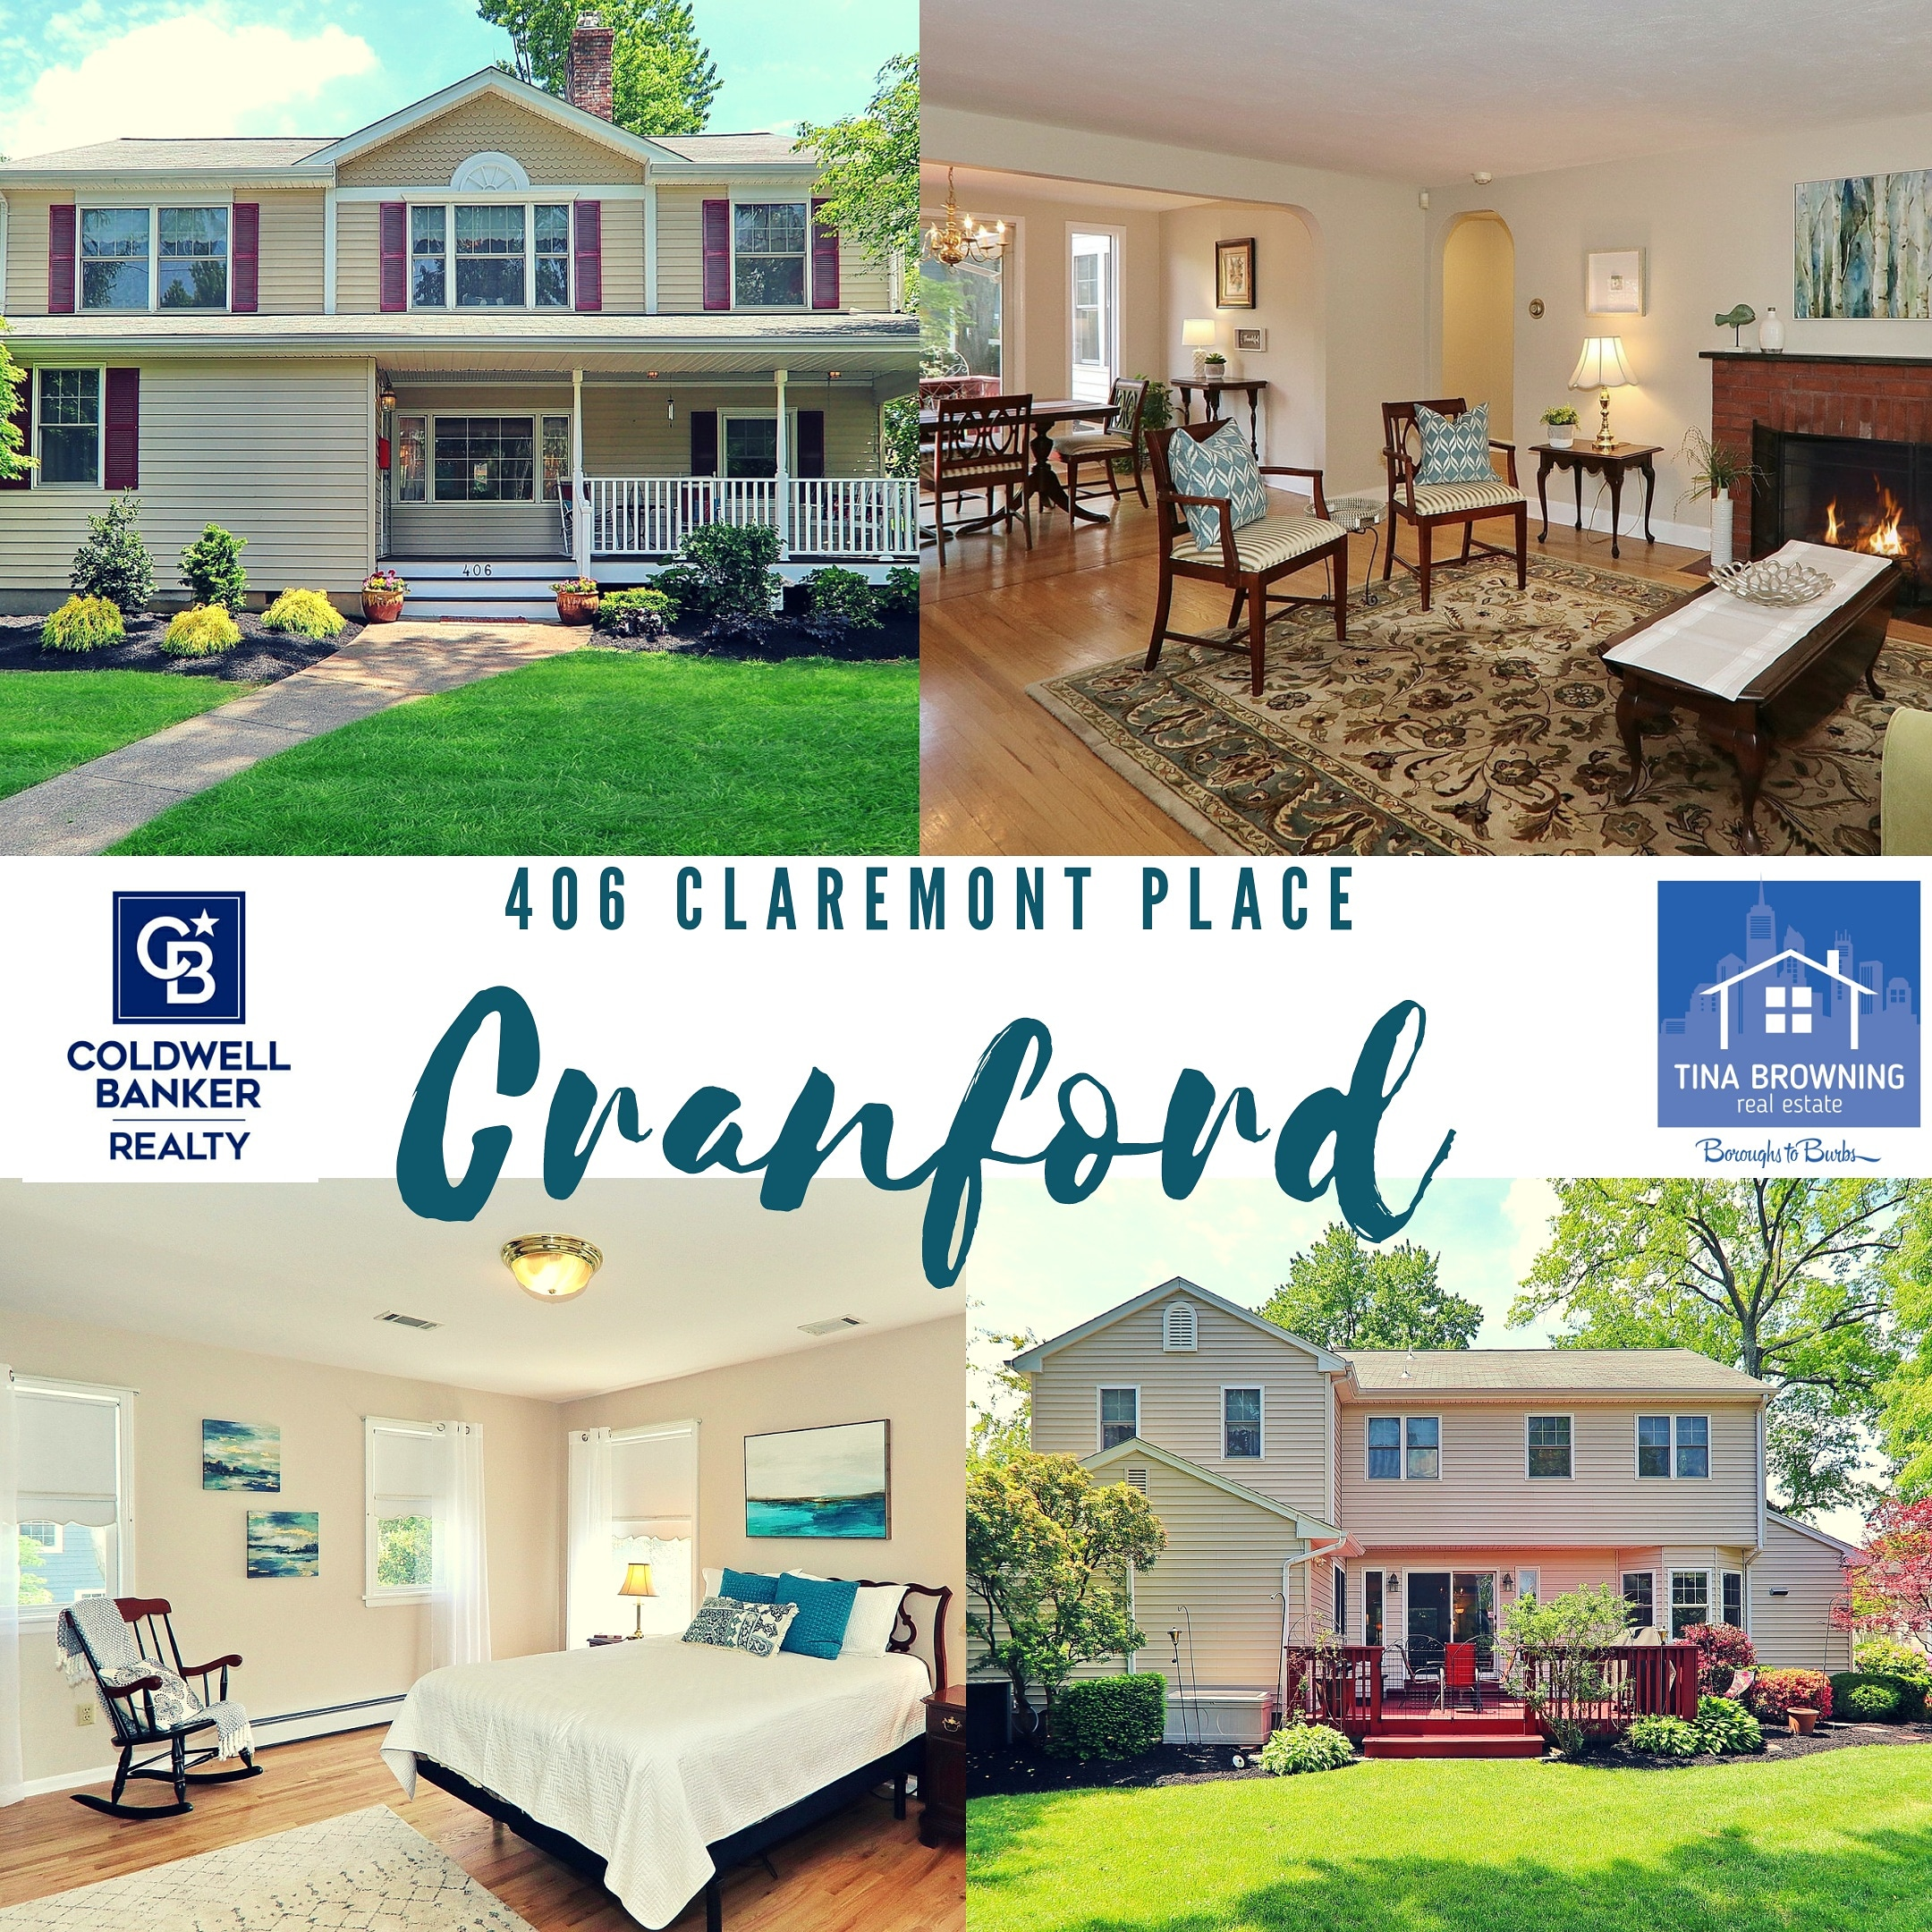 New Listing! 406 Claremont Place, Cranford